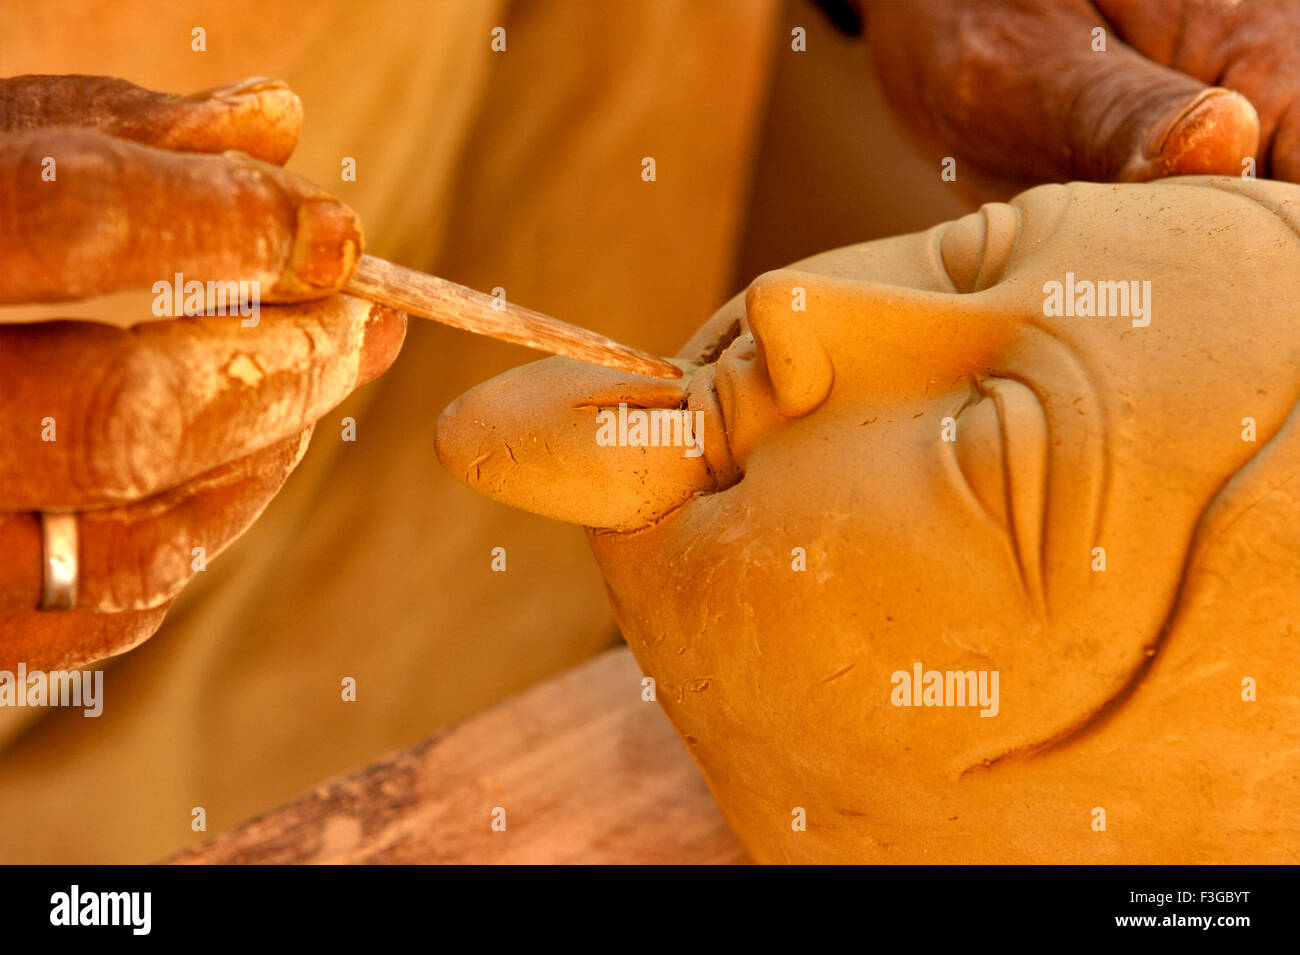 Sculptor giving finishing touches to Goddess Durga Kali sculpture made of clay for Durga Pooja Celebration ; Rajkot - Stock Image